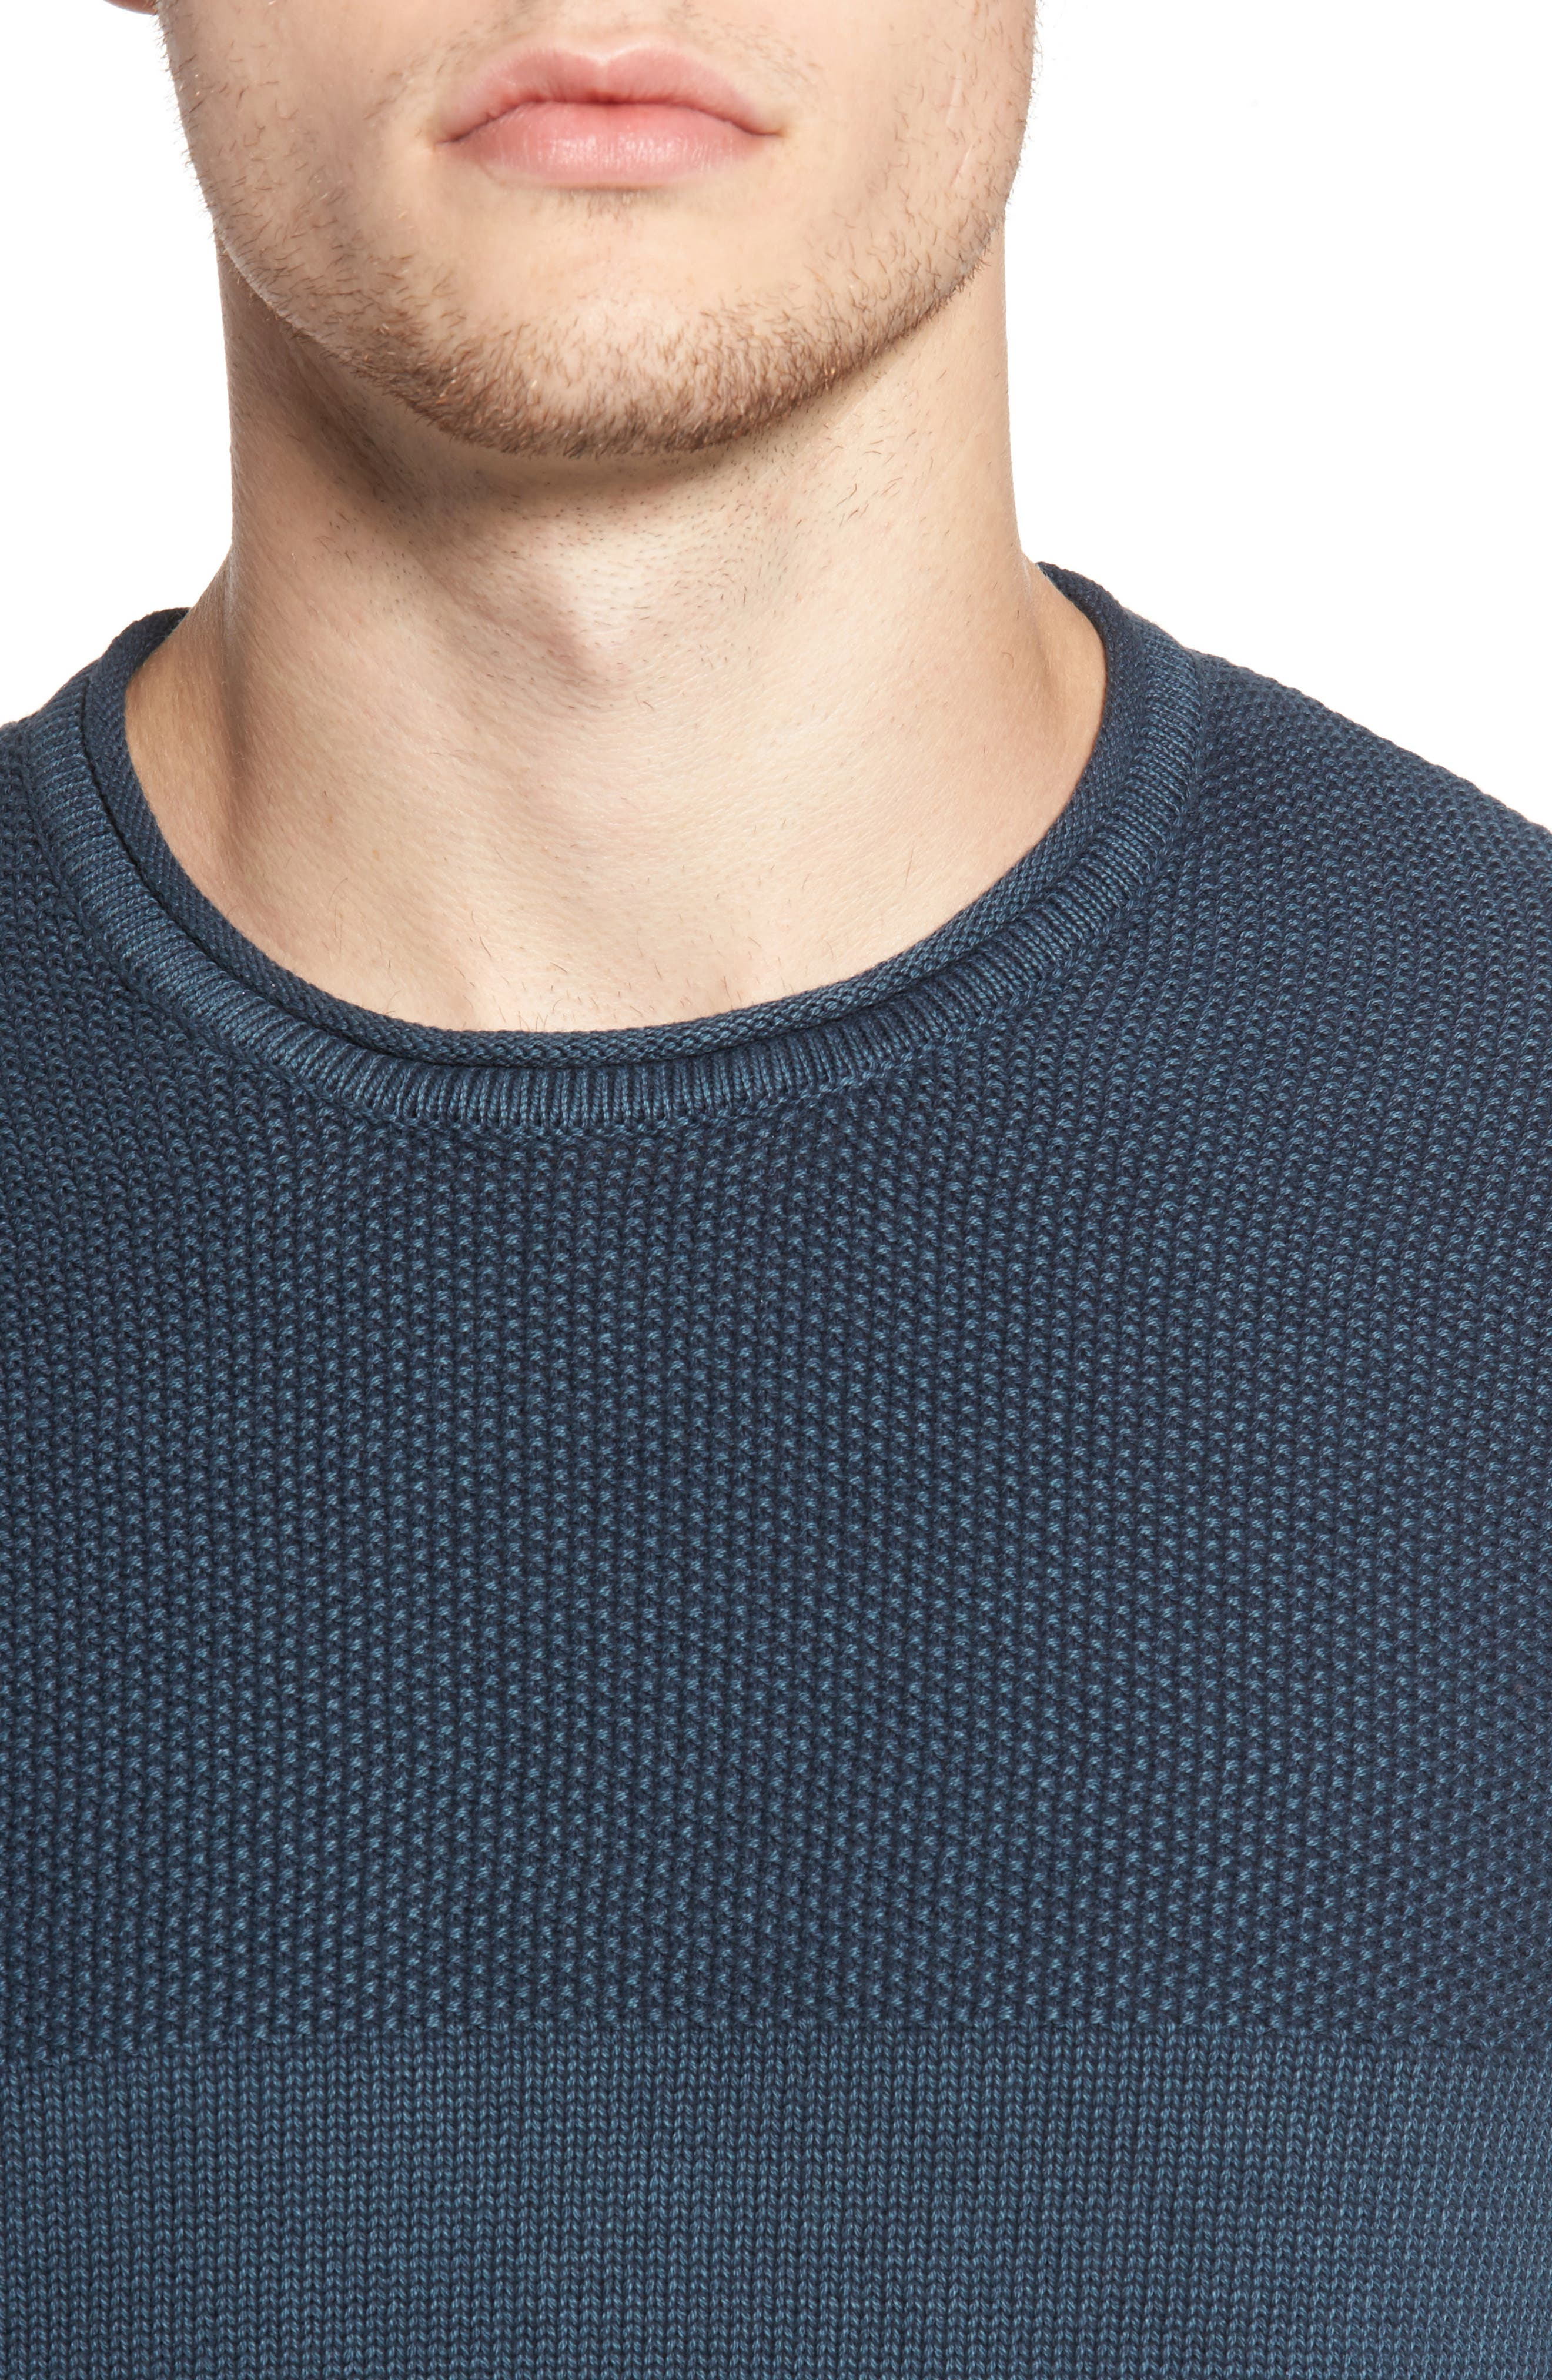 Sun Faded Sweater,                             Alternate thumbnail 8, color,